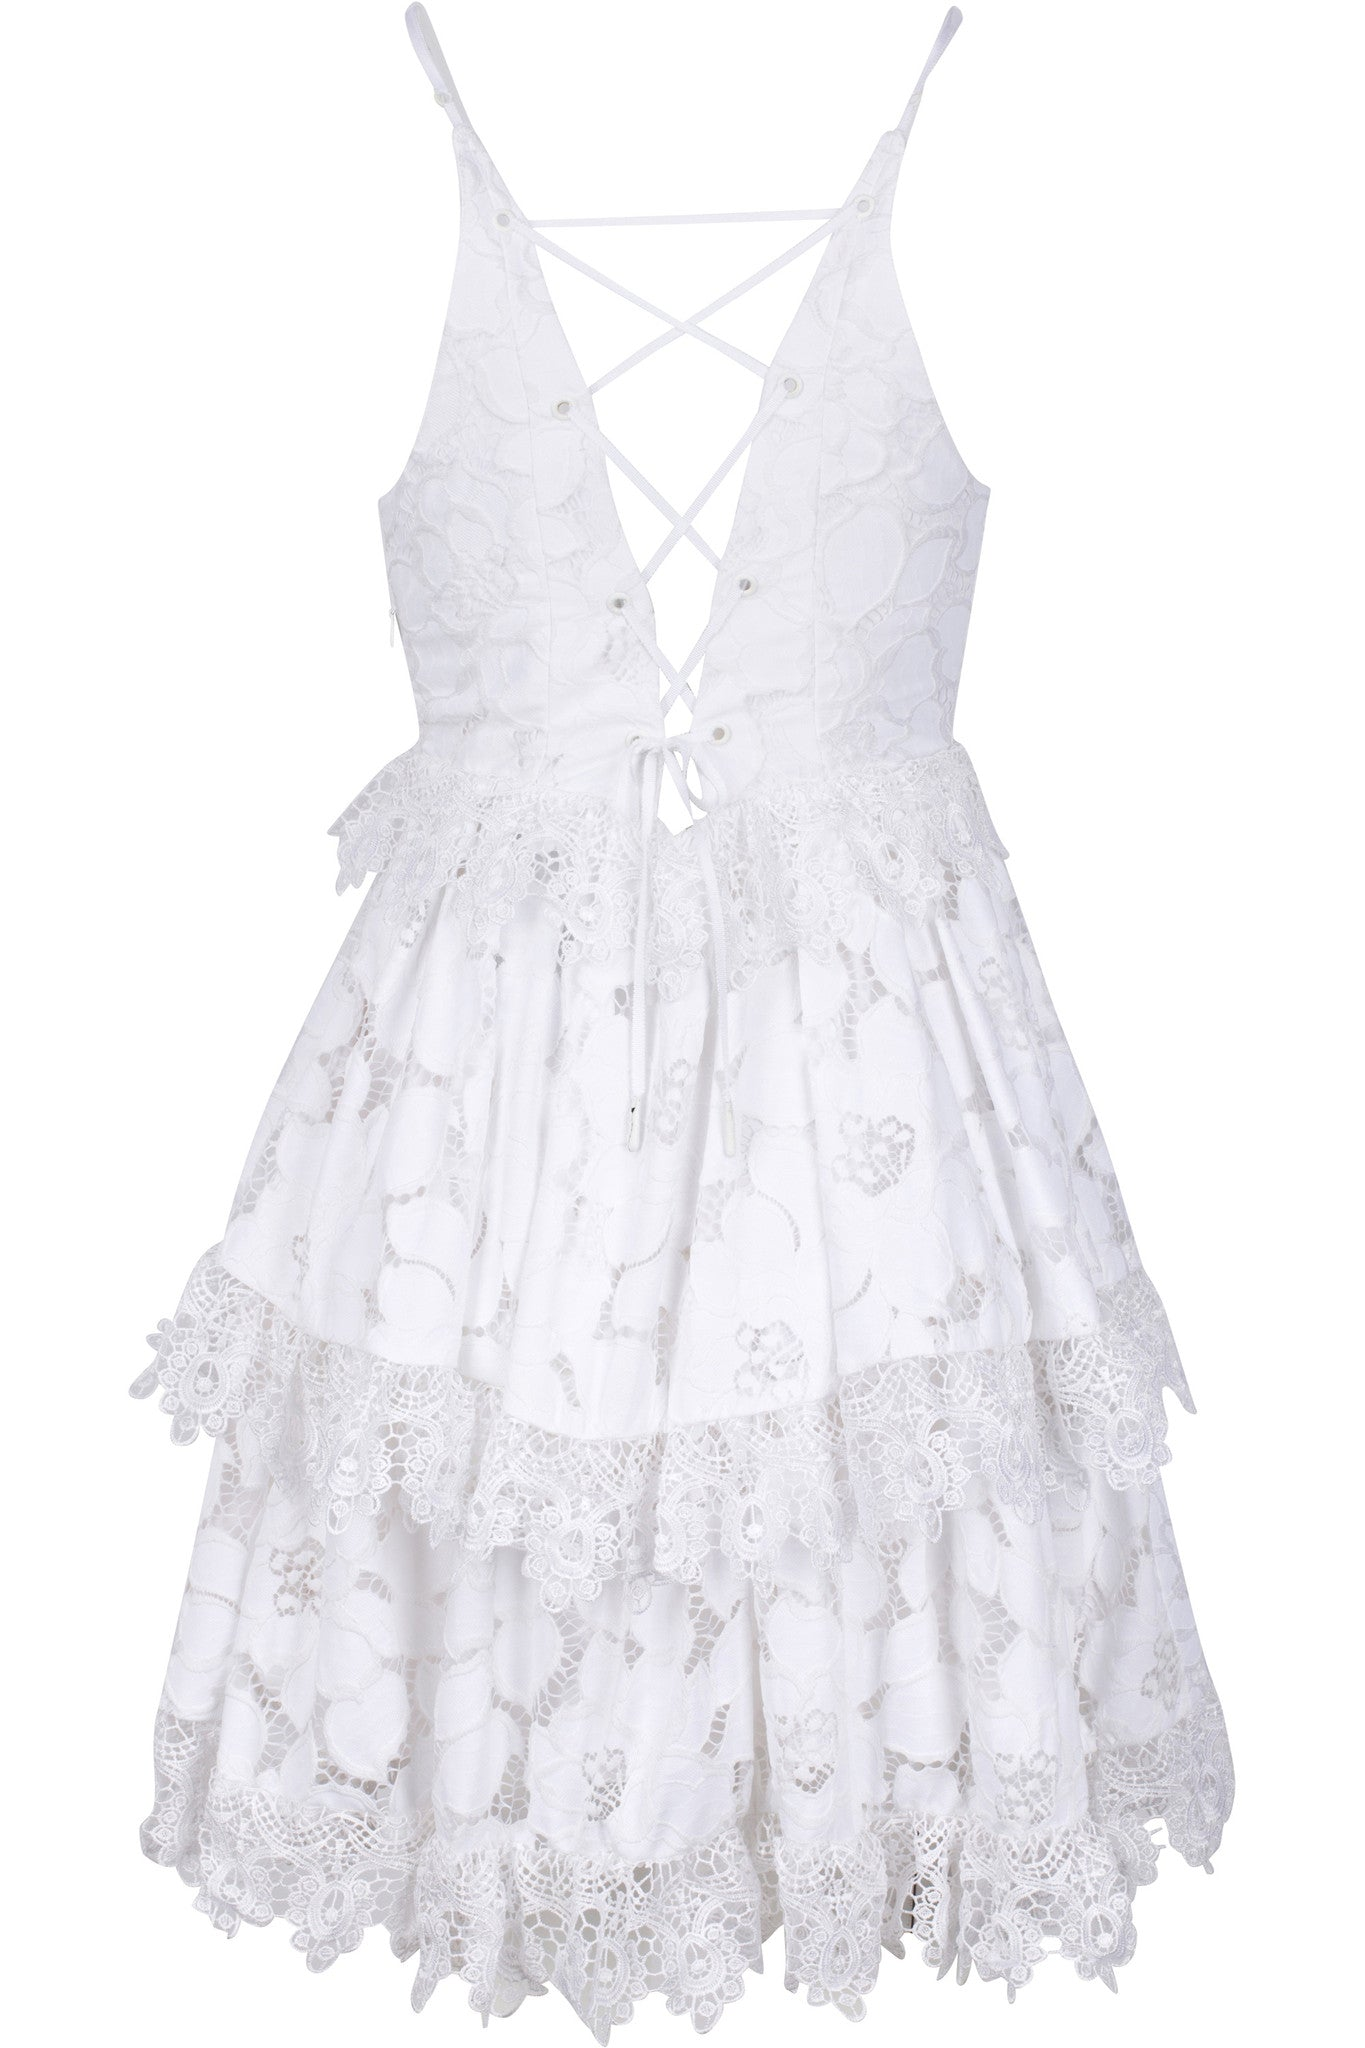 LACE BABYDOLL DRESS WHITE – KENDALL KYLIE